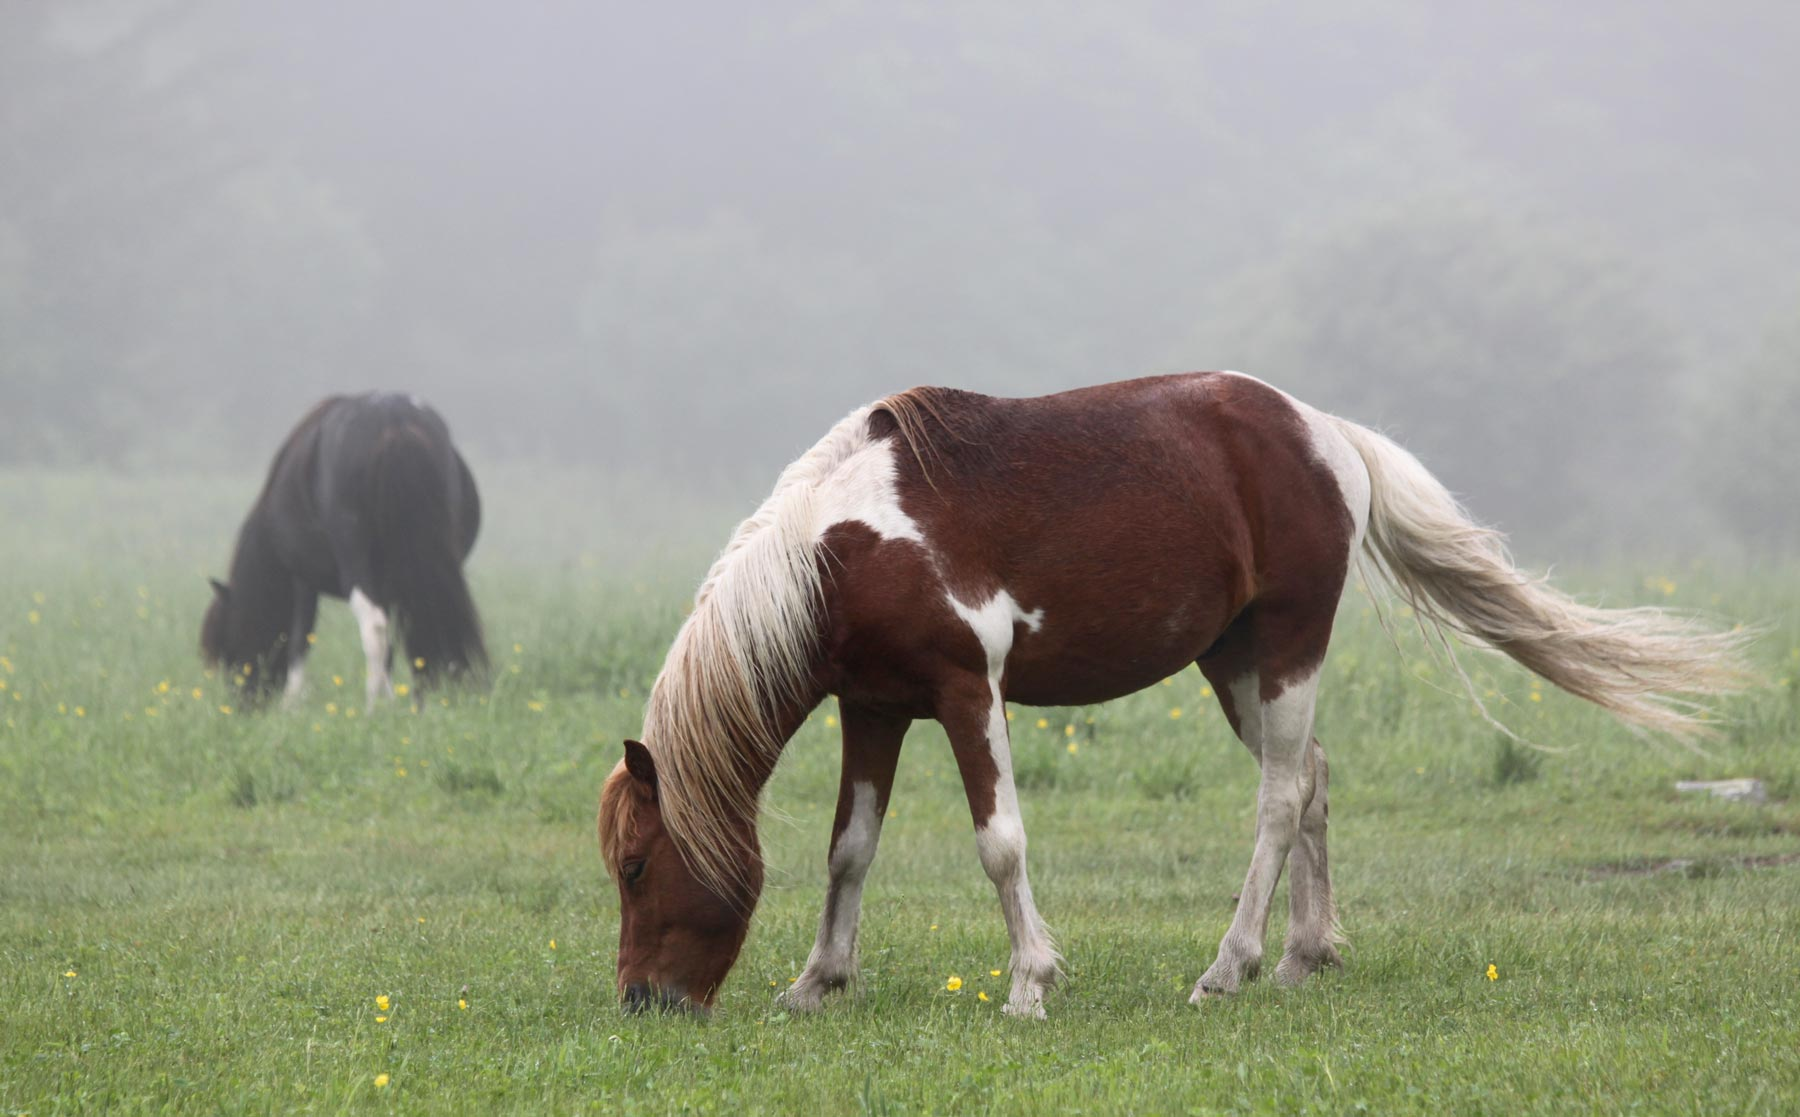 Two ponies grazing in the mist at Grayson Highlands State Park, Virginia